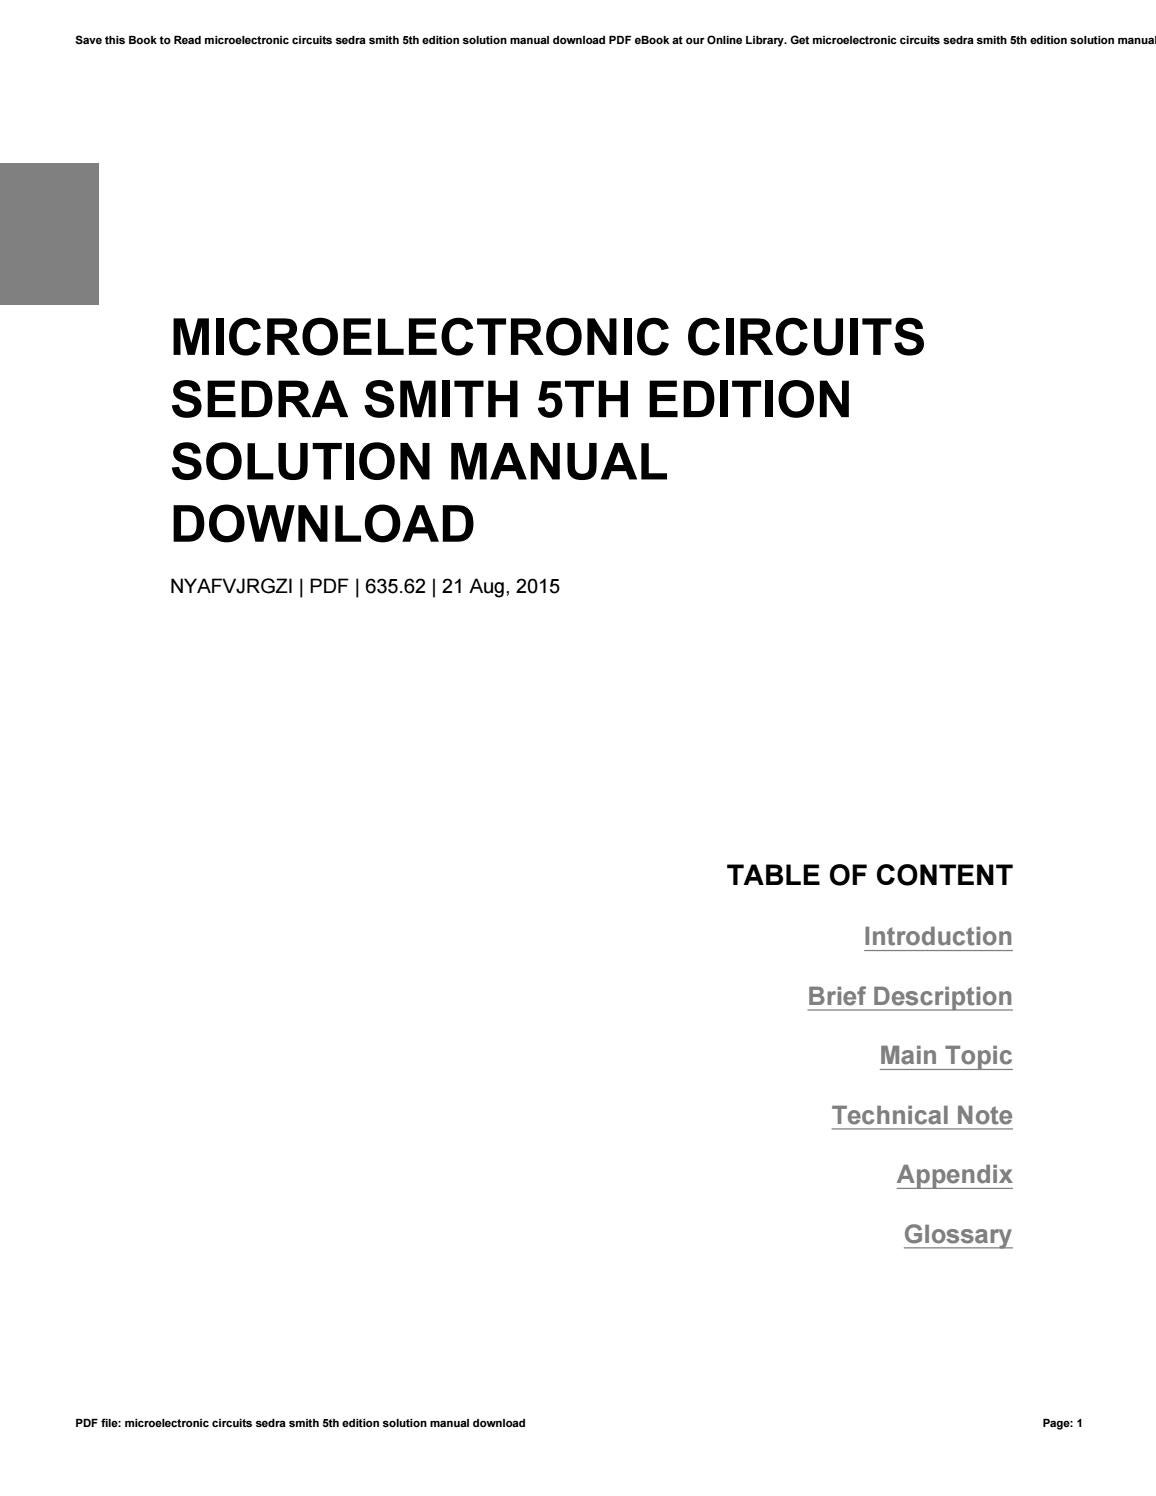 sedra smith microelectronic circuits 7th edition solution manual